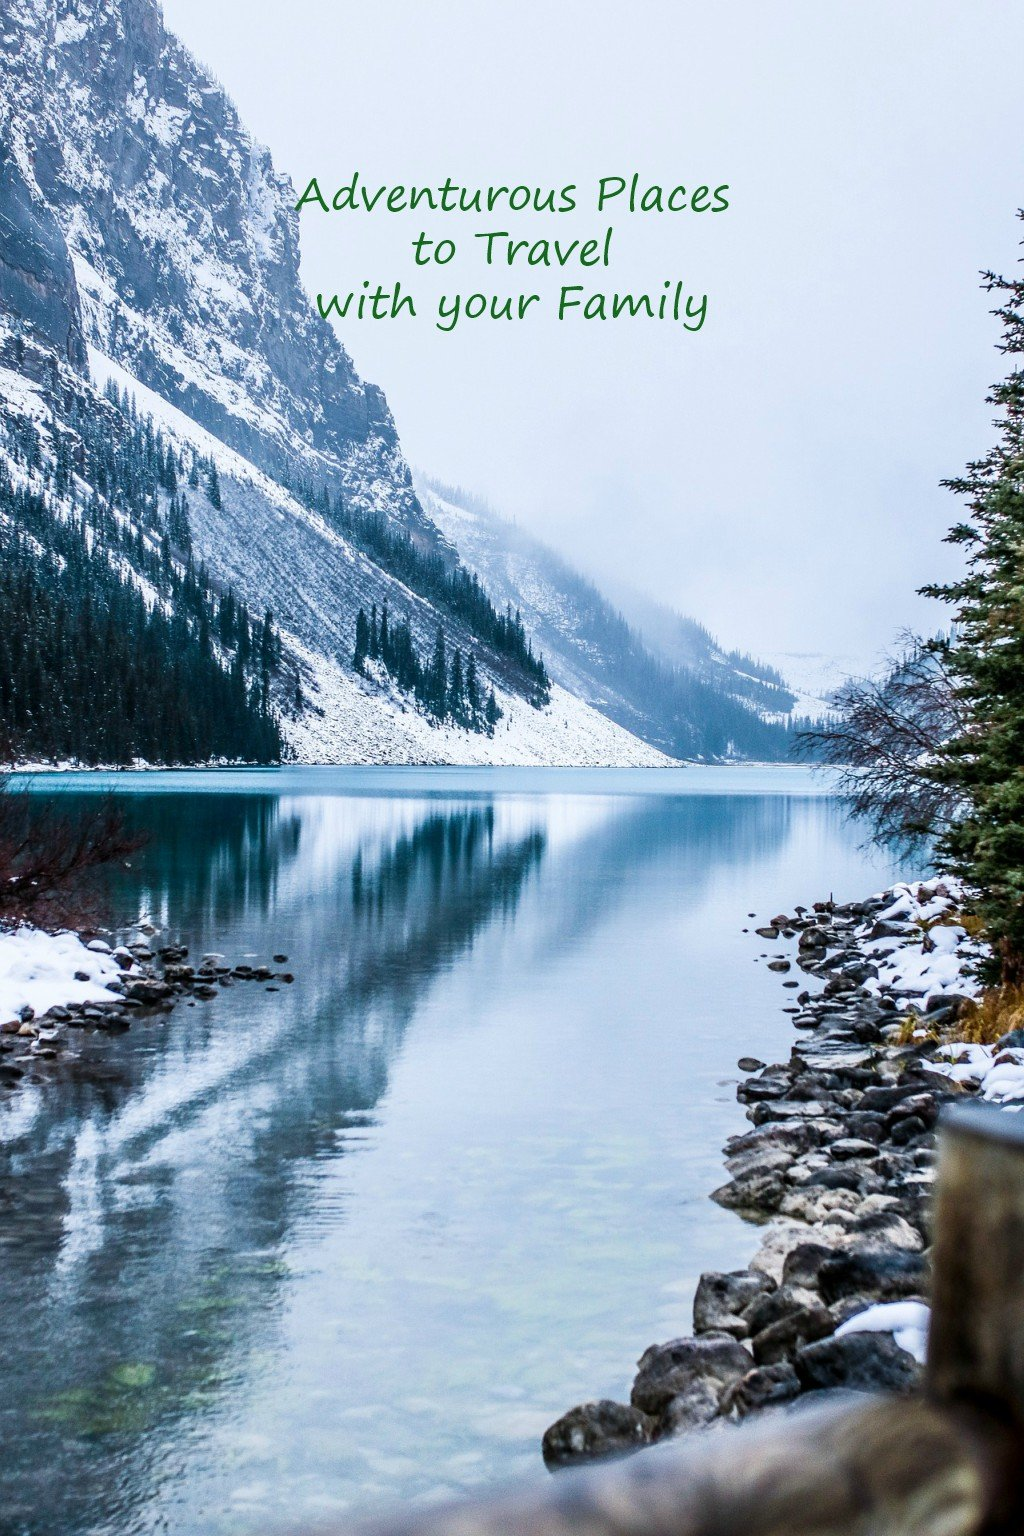 Adventure Trips All Families Should Take